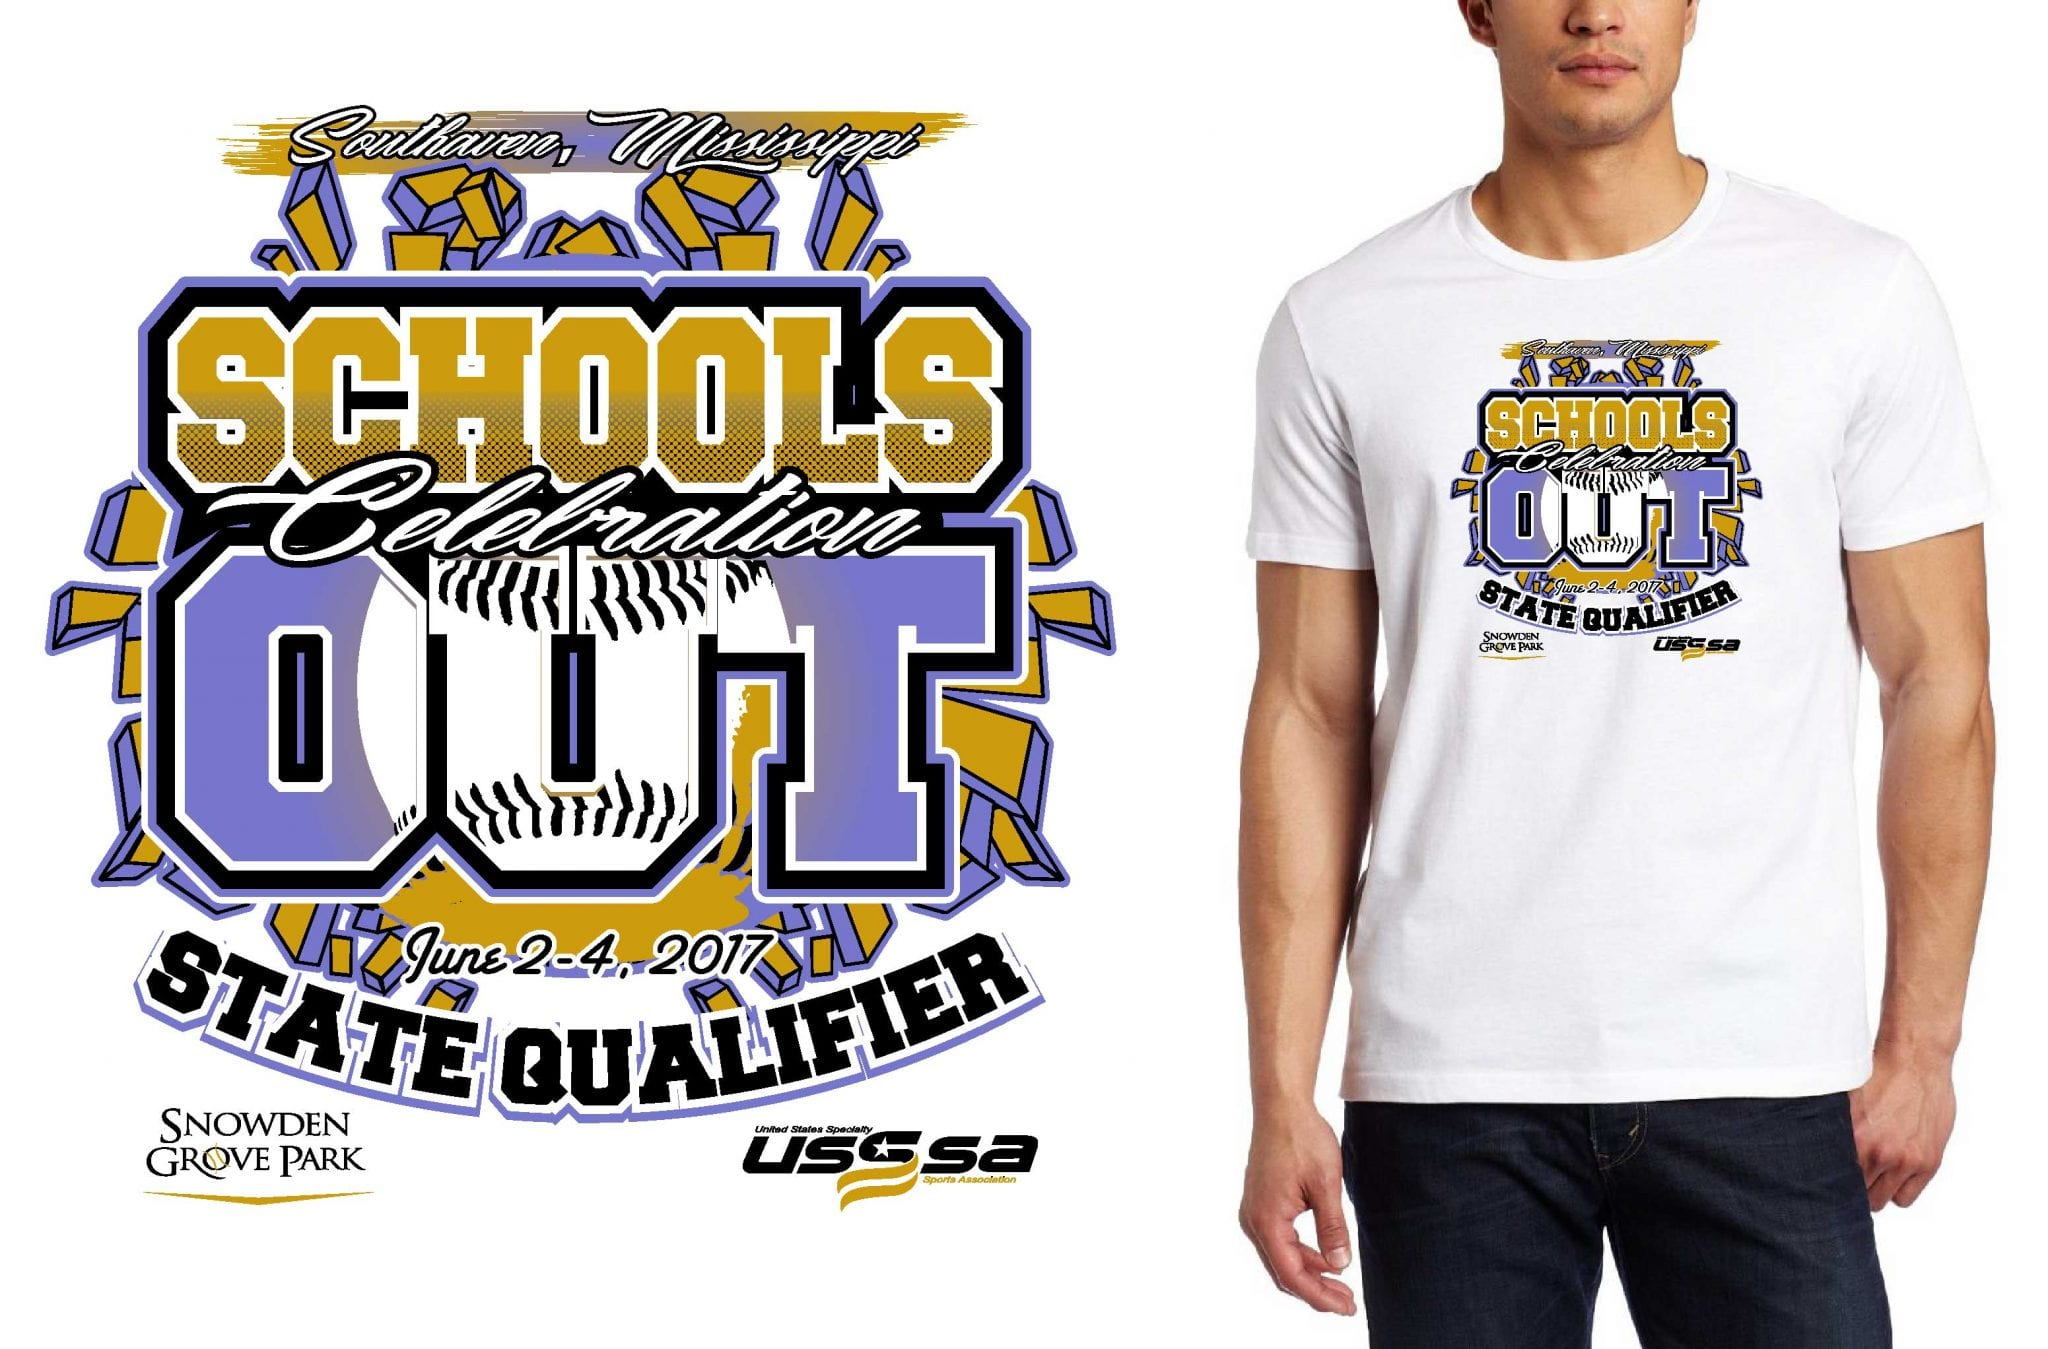 BASEBALL LOGO for Schools-Out-Celebration T-SHIRT UrArtStudio